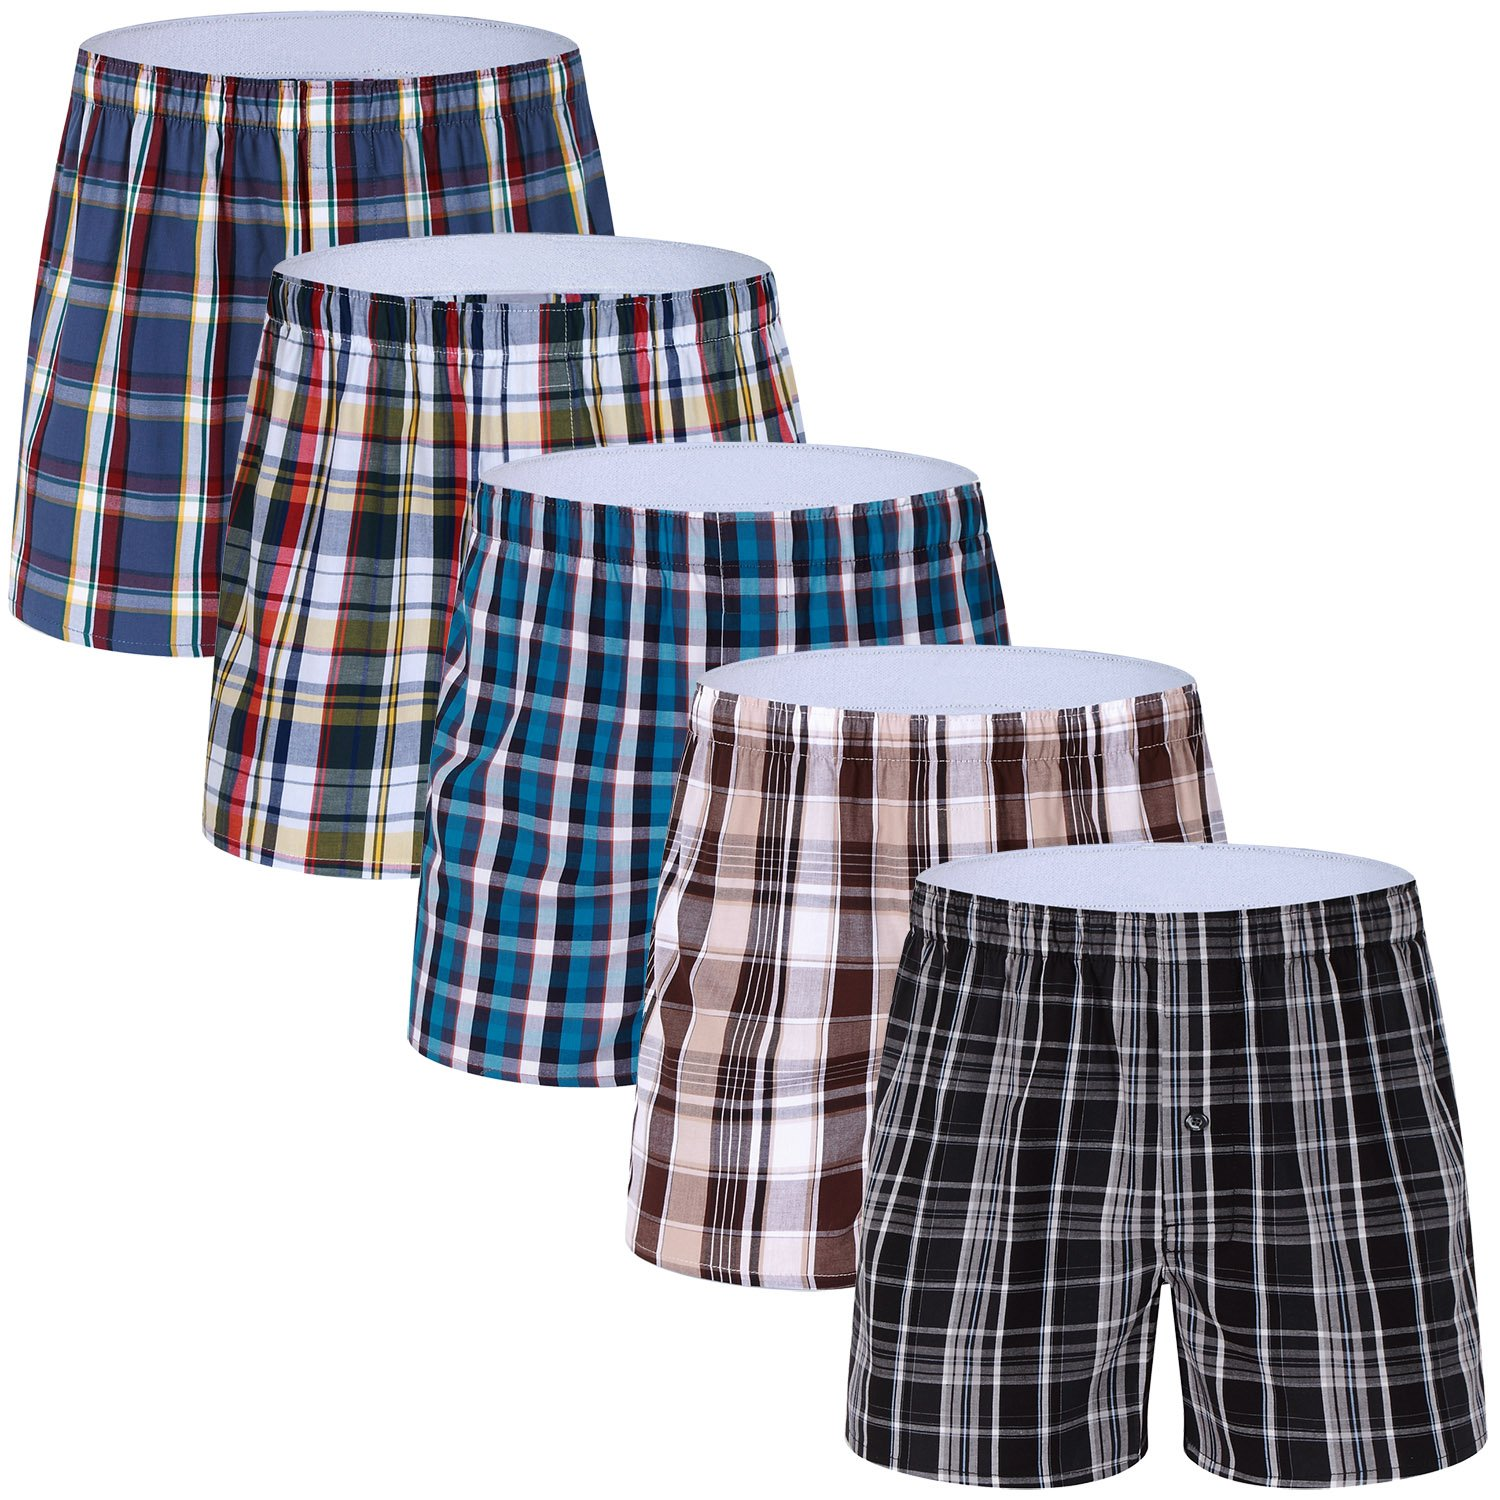 5-Pack Men's Colorful Woven Boxer Underwear 100% Cotton Premium Quality Shorts T1-Large